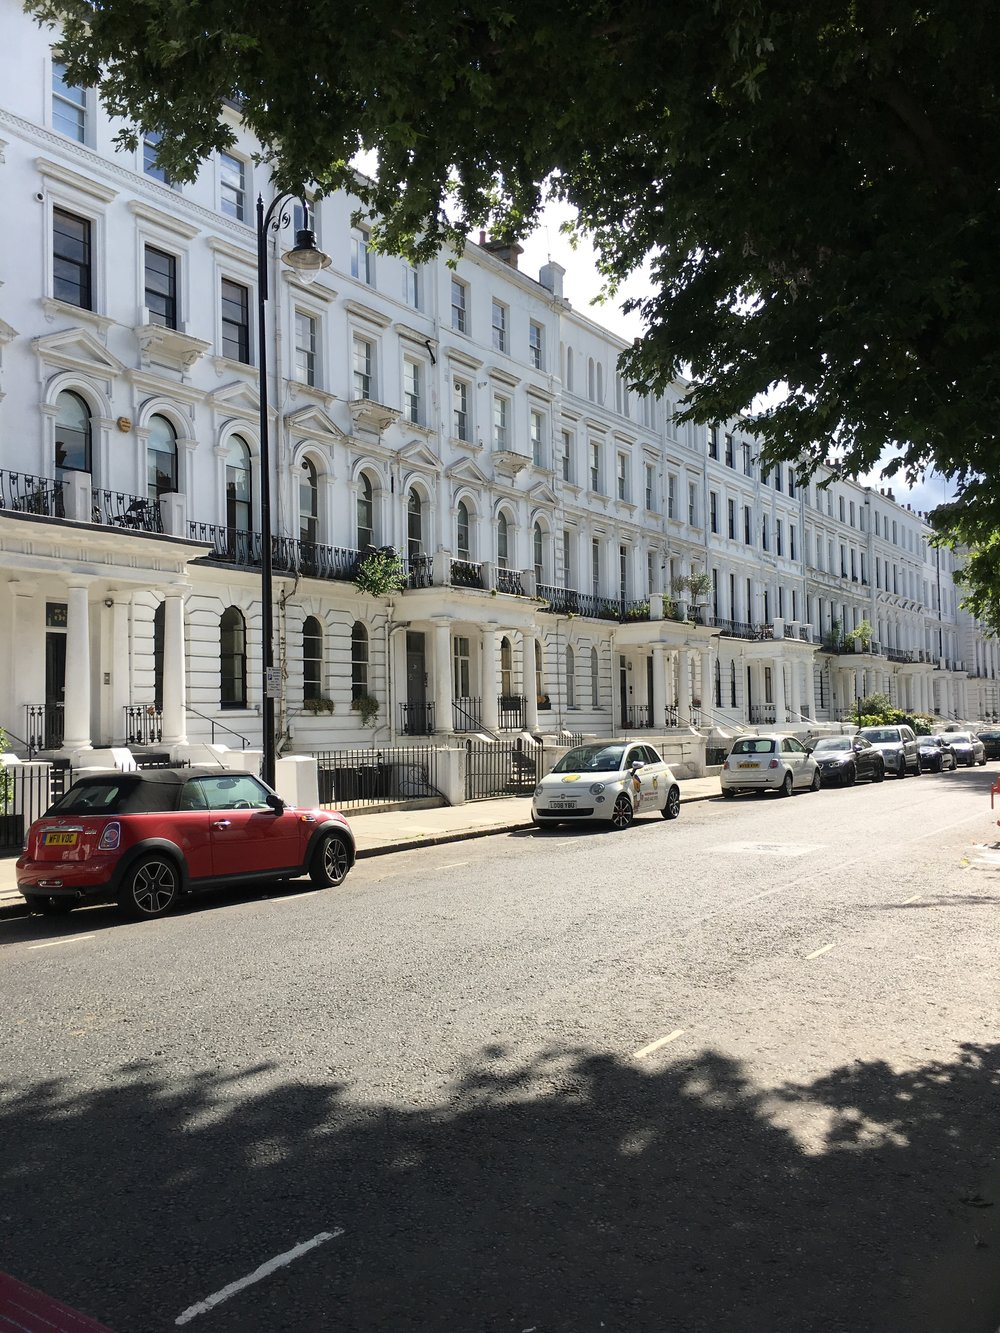 notting-hill-town-house-street